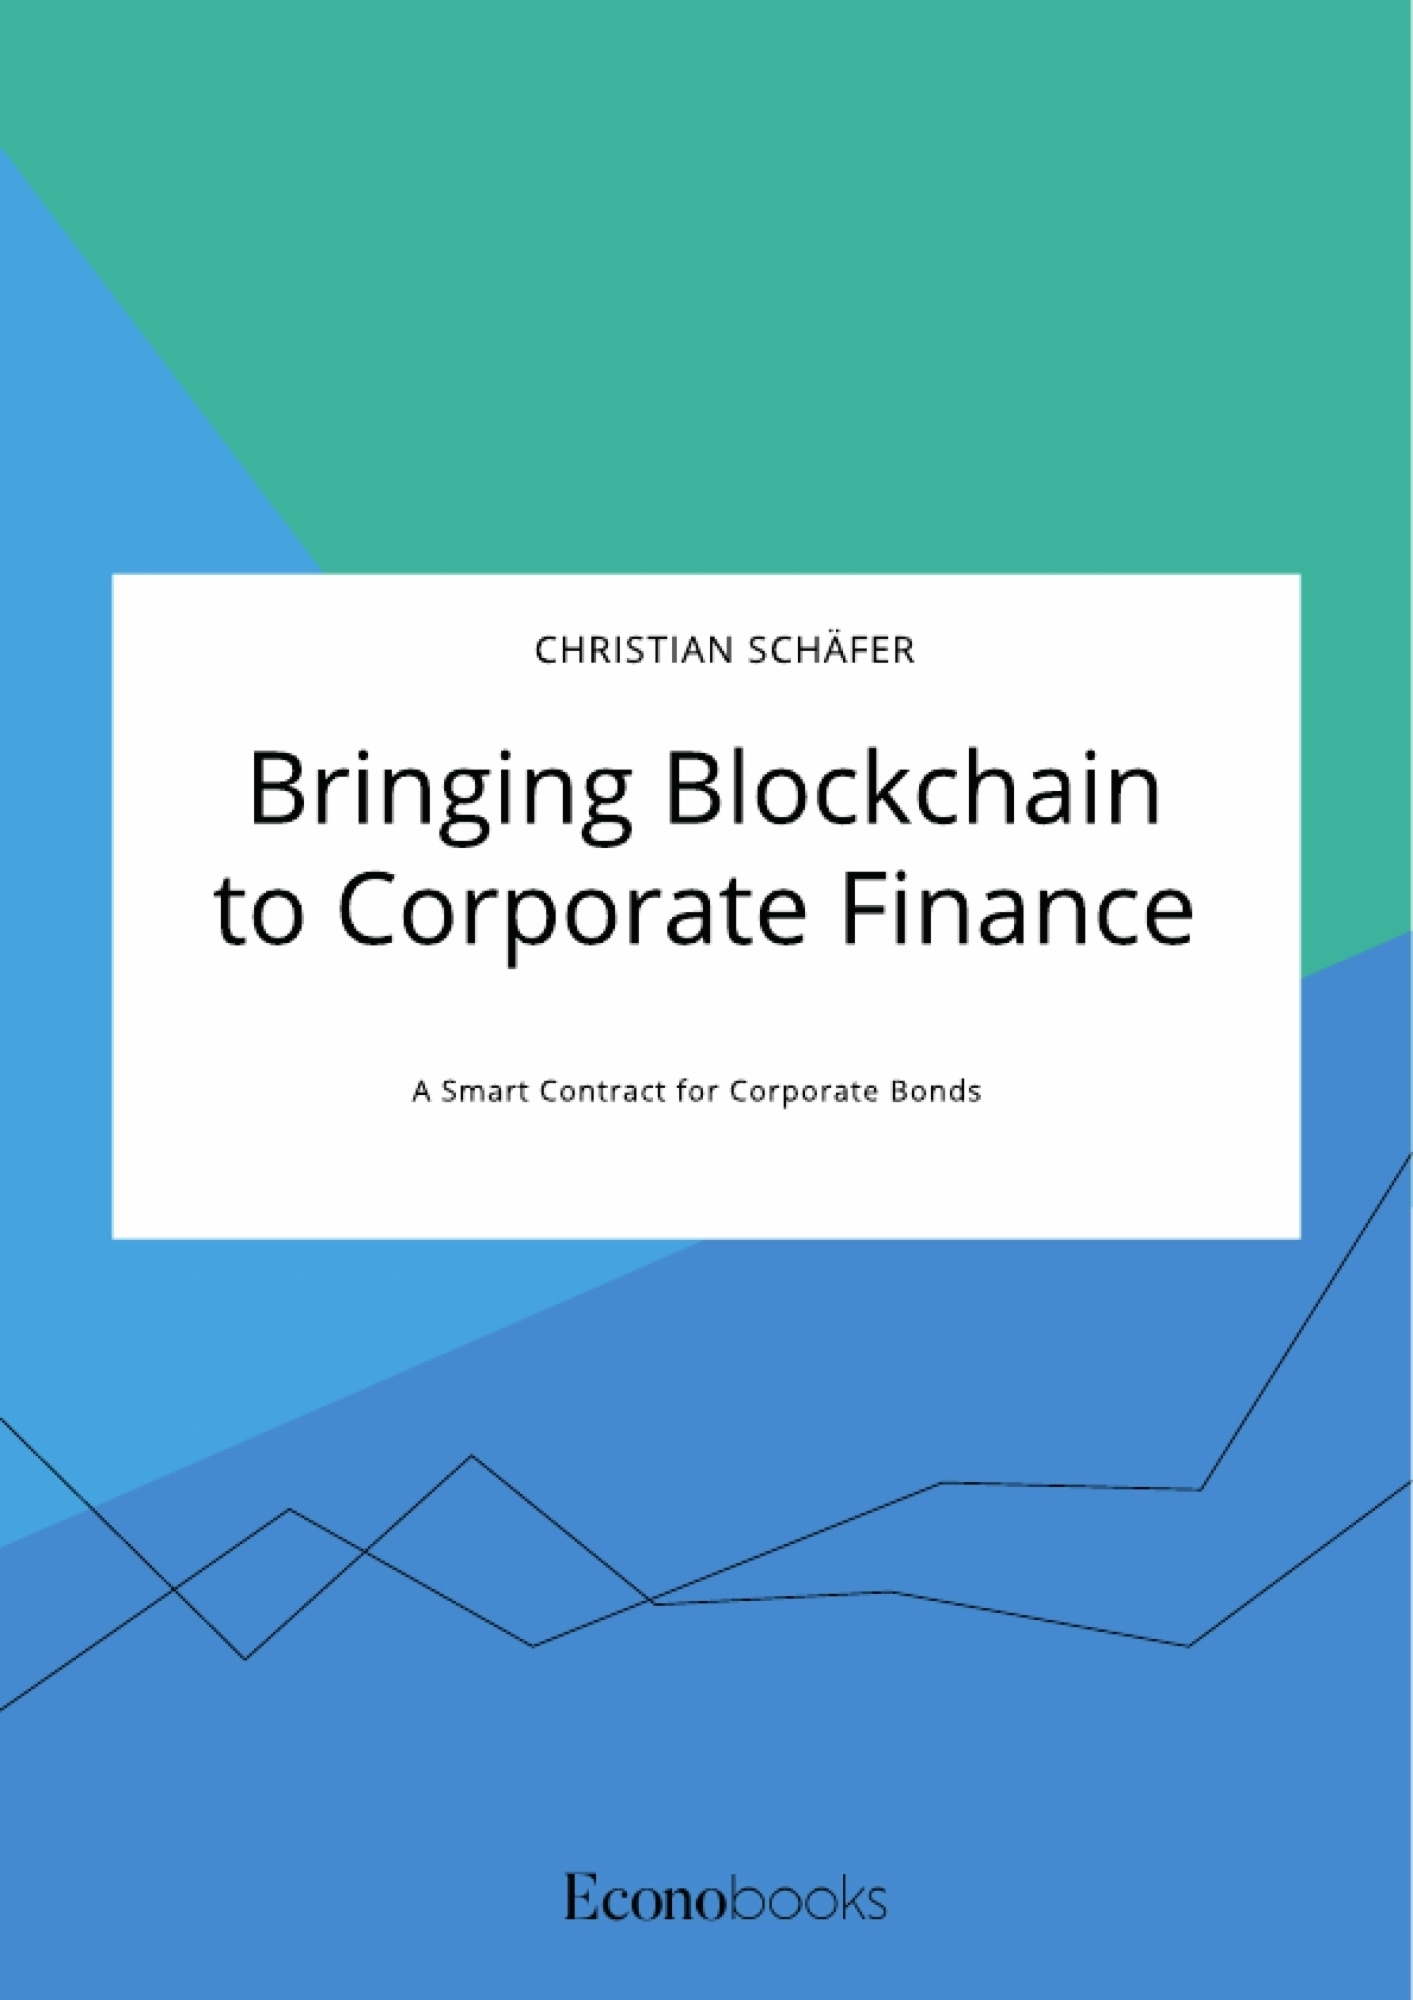 Title: Bringing Blockchain to Corporate Finance. A Smart Contract for Corporate Bonds